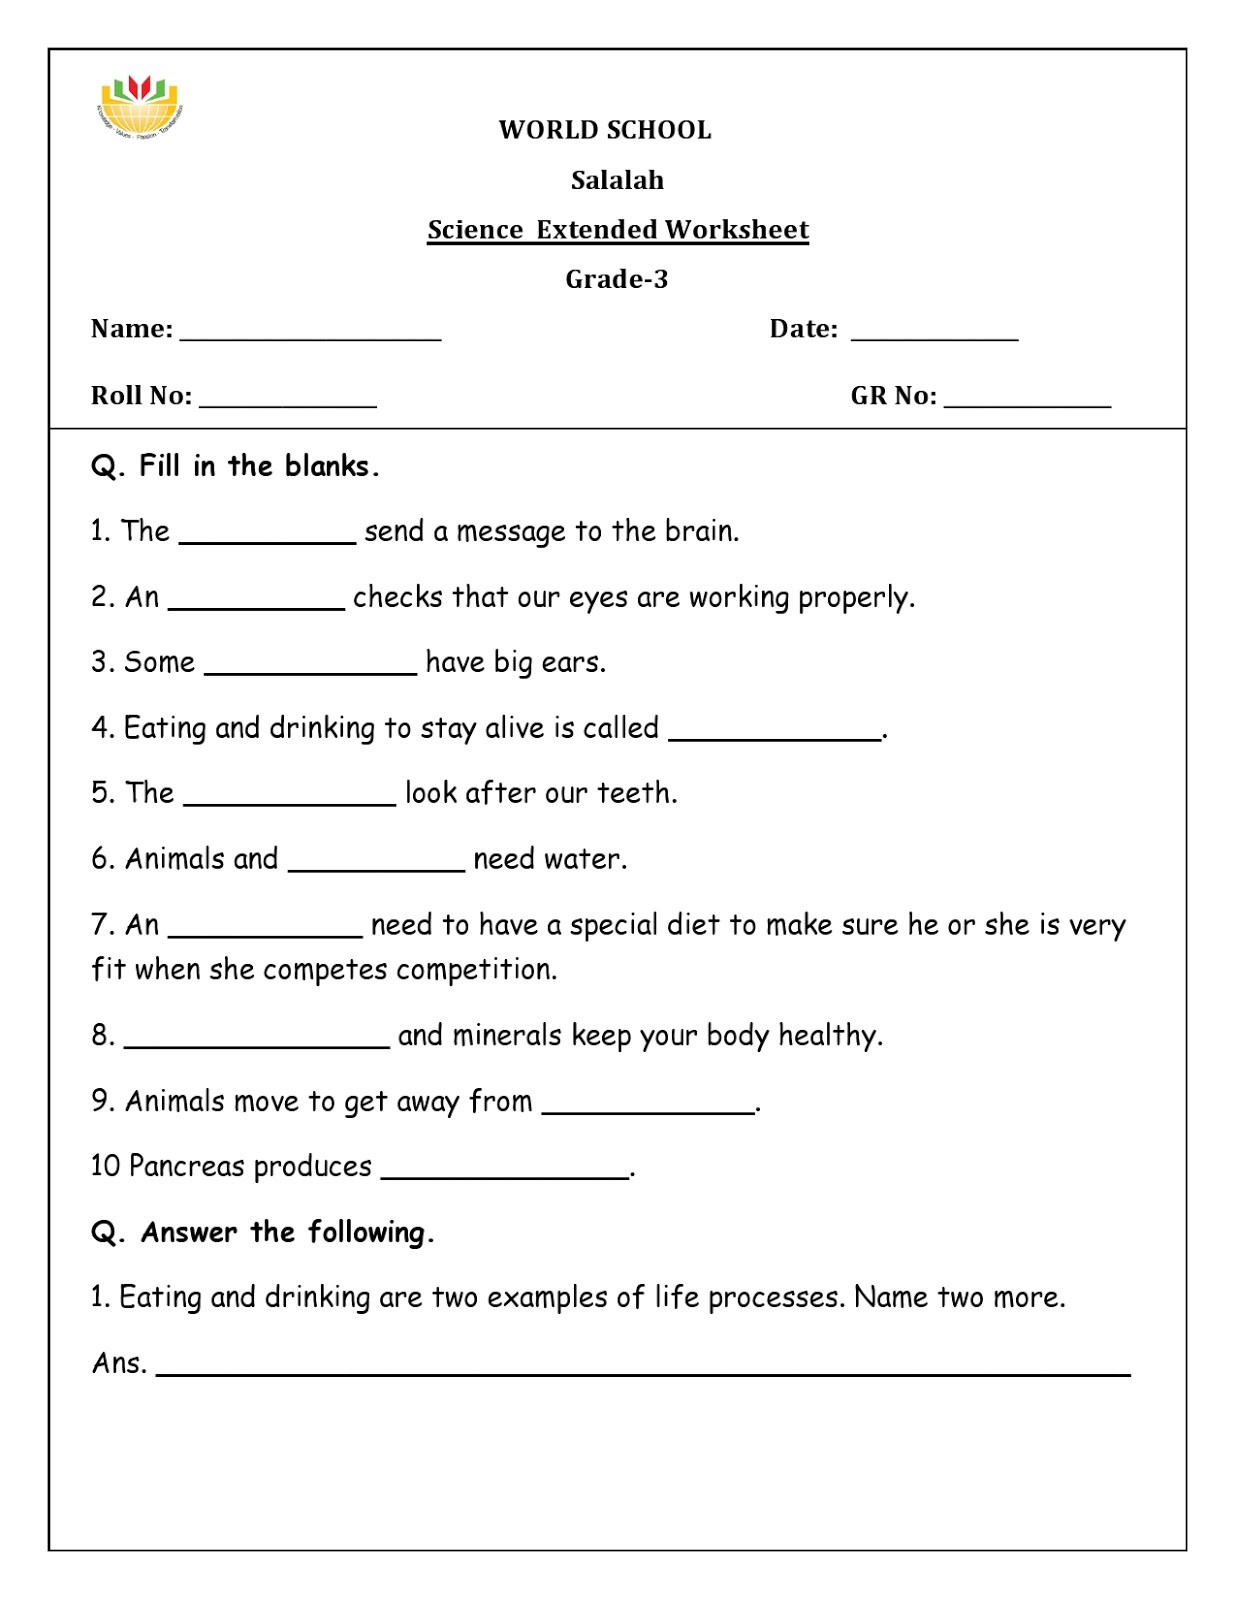 Science World Worksheet Answers Science Worksheets for Grade to Educations Math Games